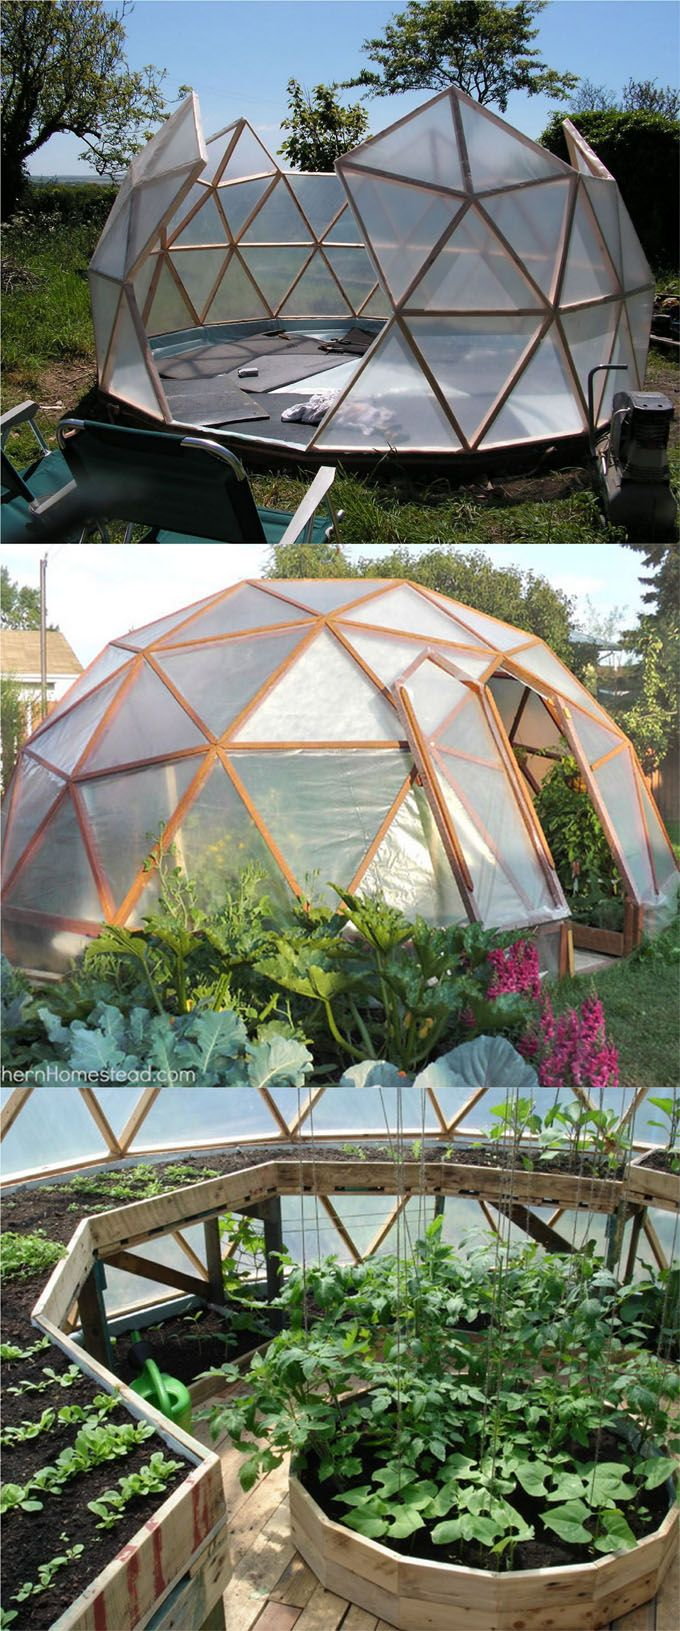 21 DIY Greenhouses with Great Tutorials Ultimate